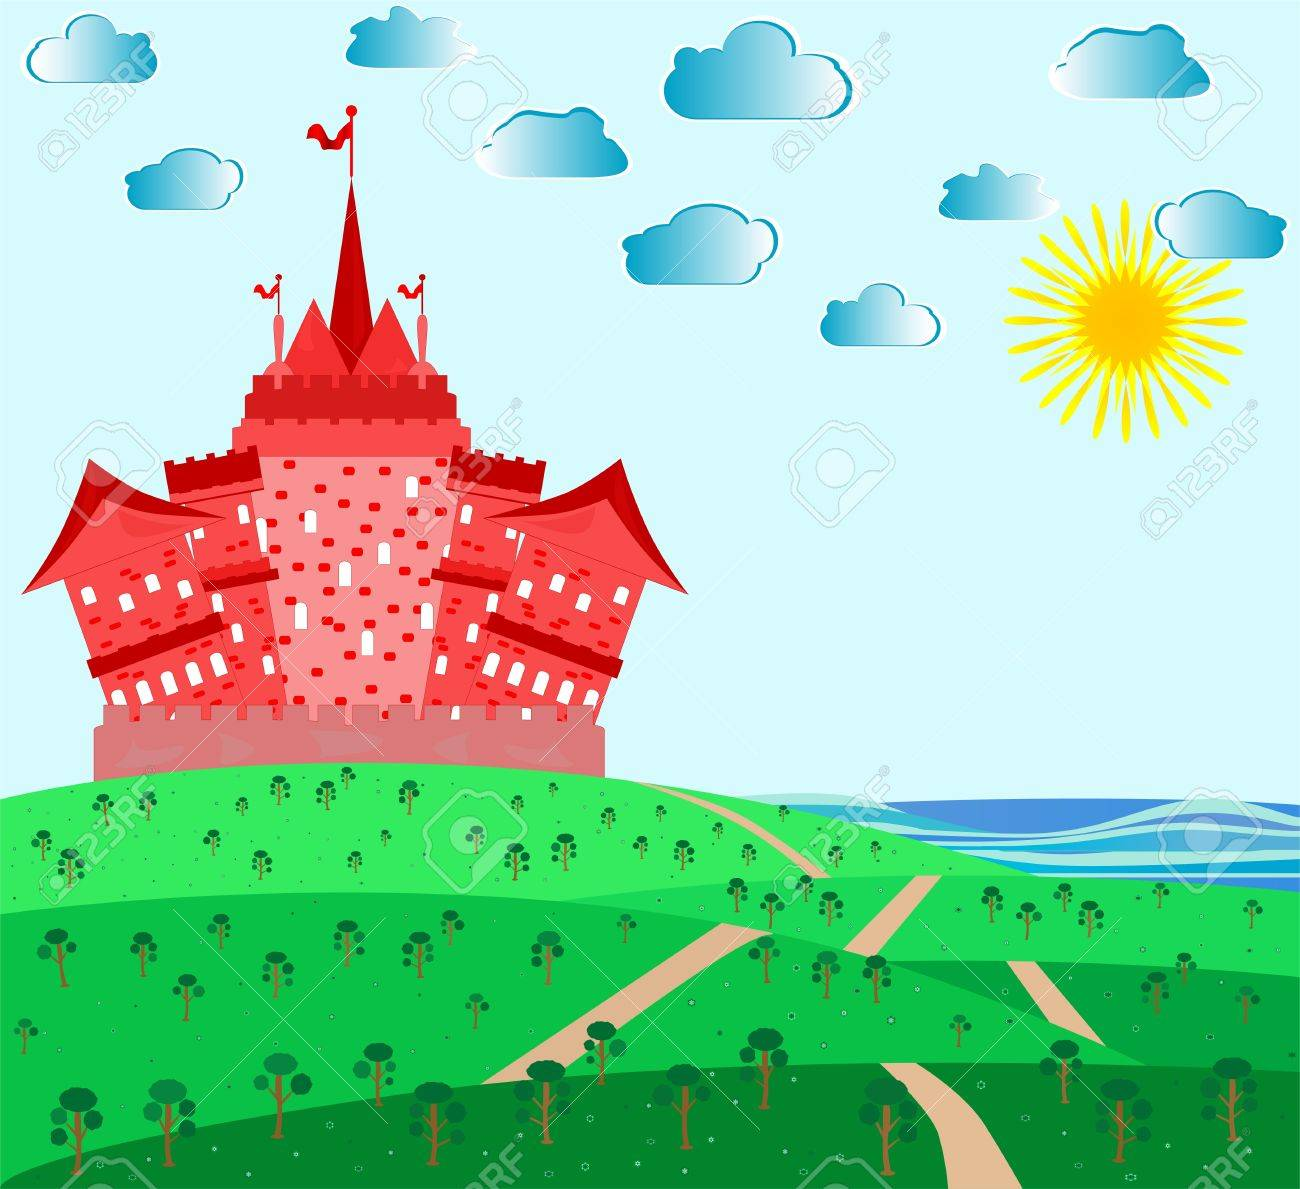 Fairytale landscape with red magic castle Stock Vector - 10030466